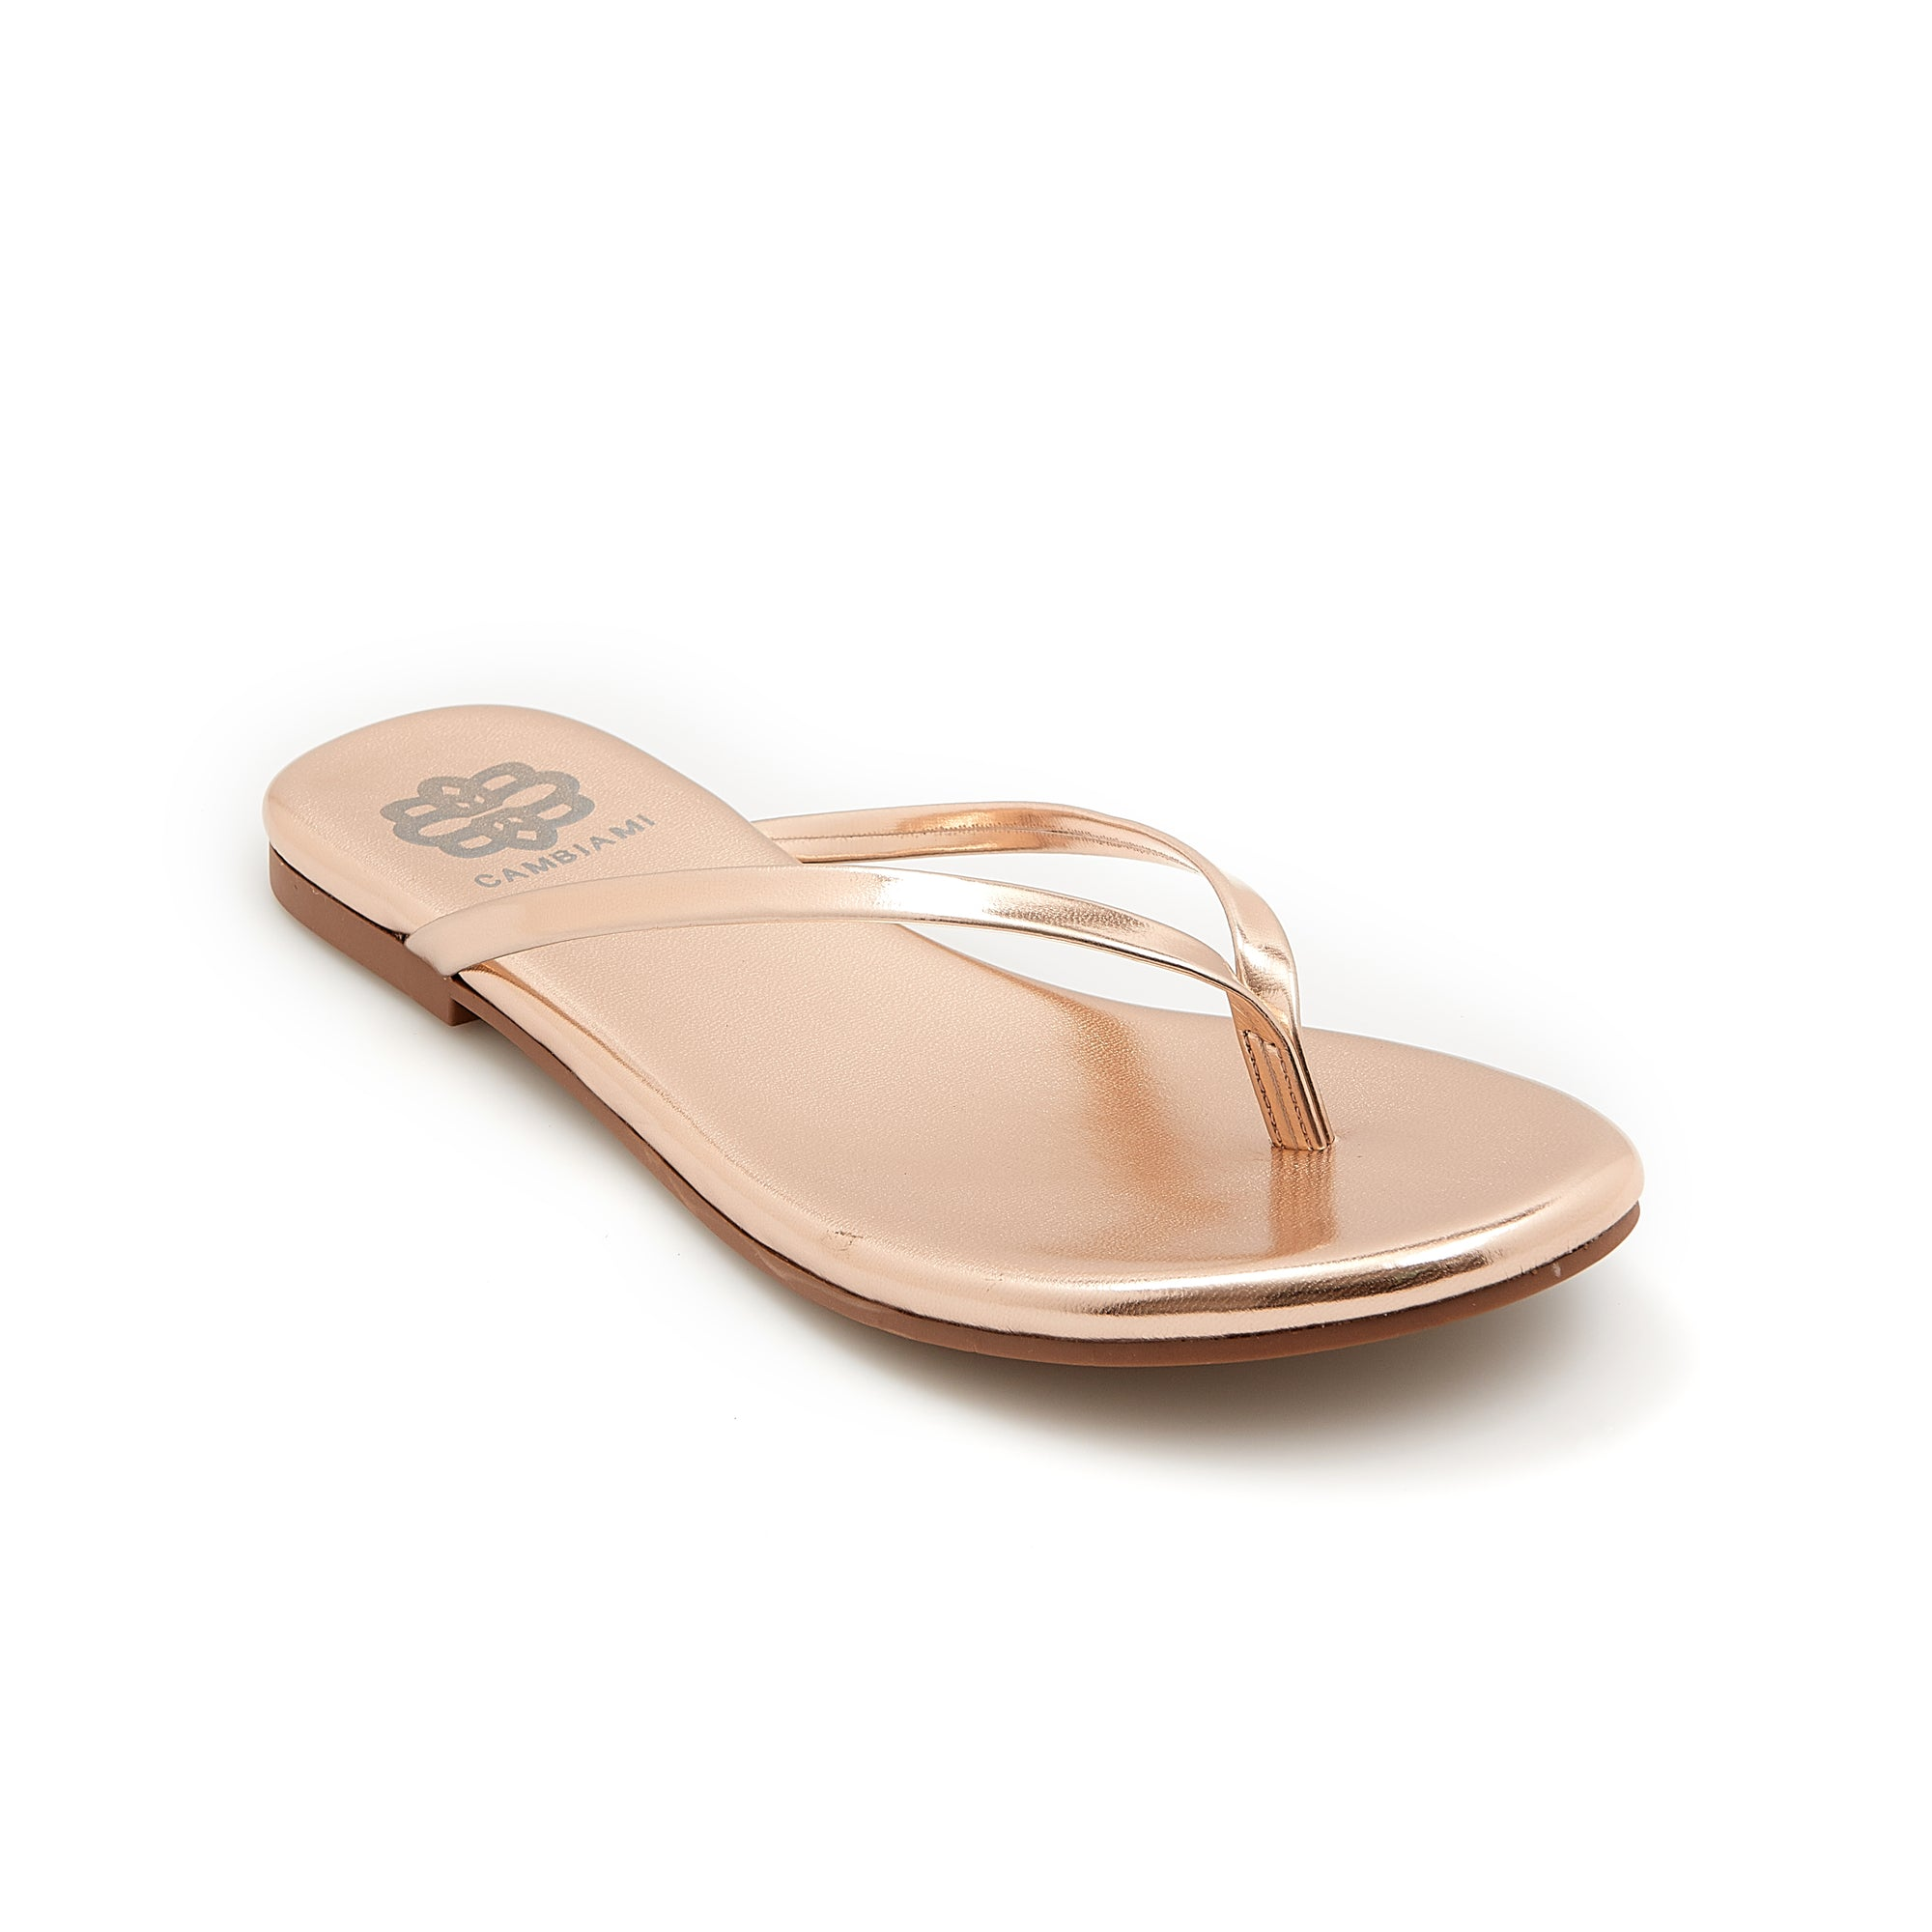 Rose Gold Flip Flop - Cambiami